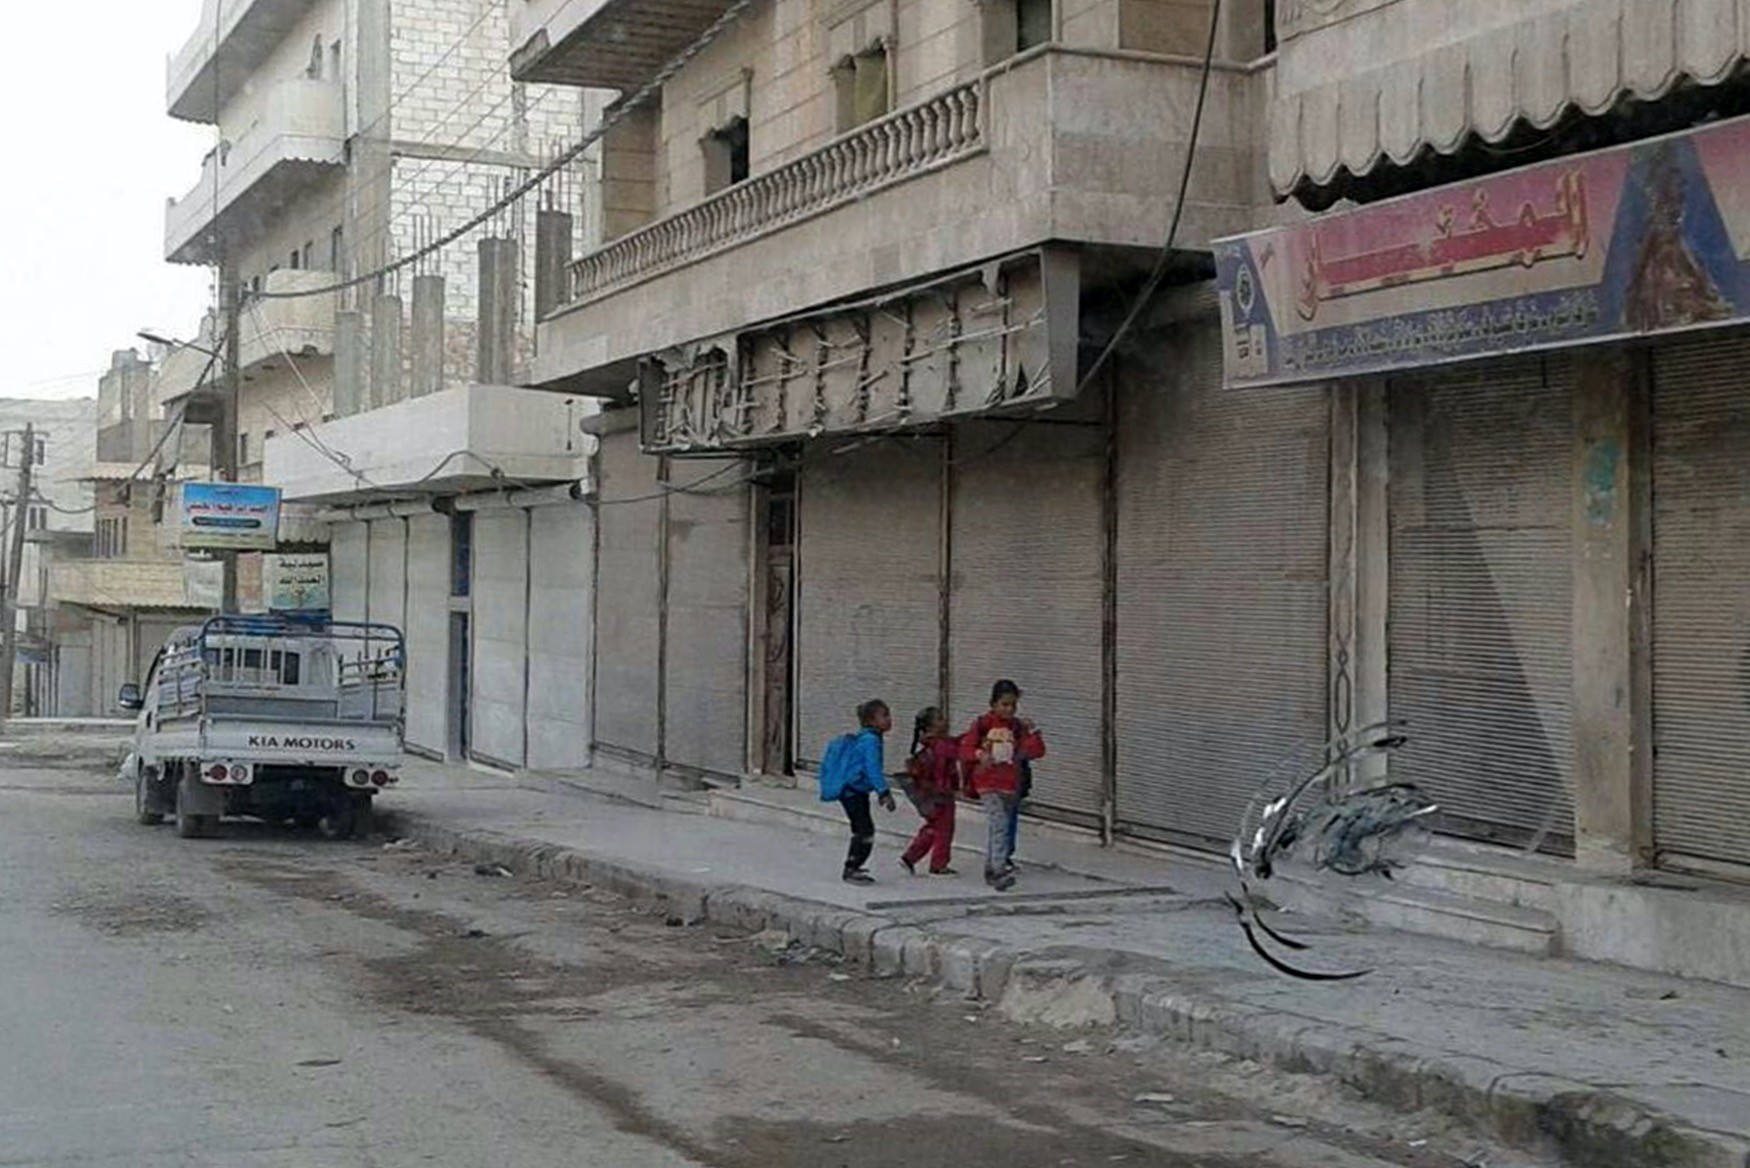 Locals in Manbij shut down their stores to protest the PYDu2019s forcible recruitment of young males in the city.